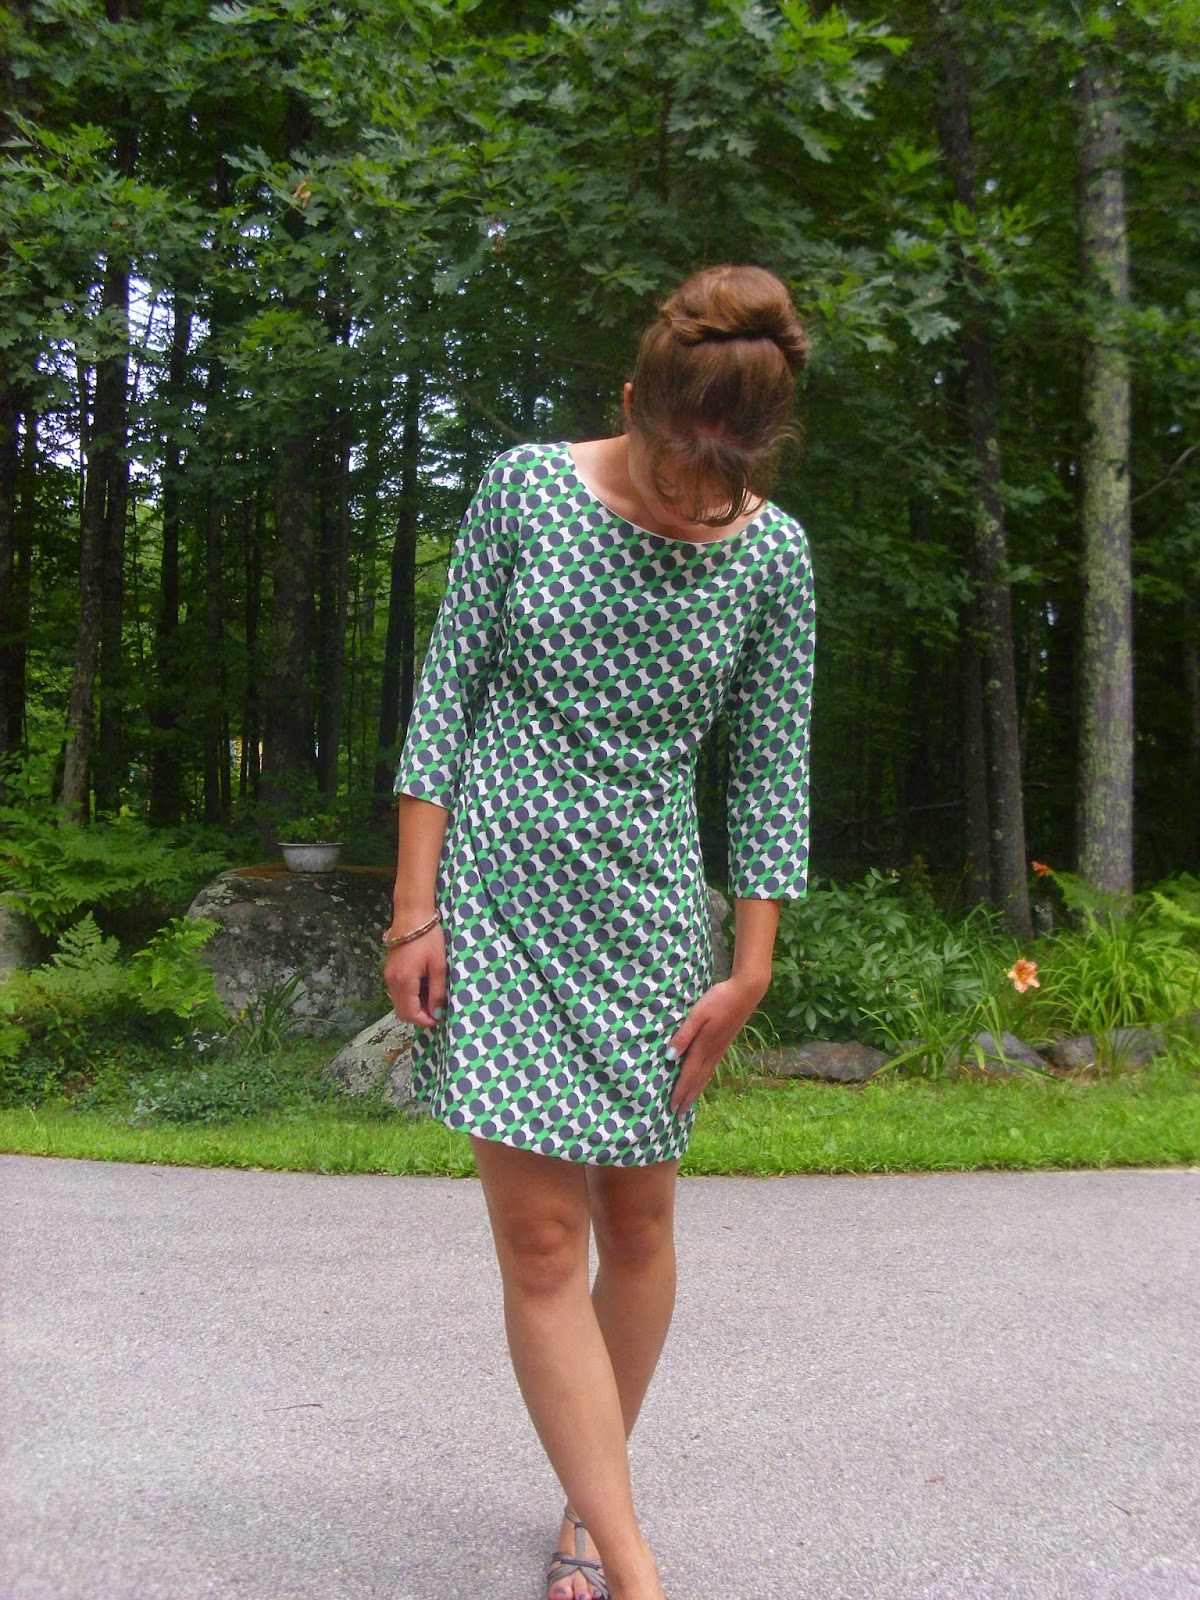 Young Yankee Lady: 60's shift dress mod bouffant bun hair style blogger